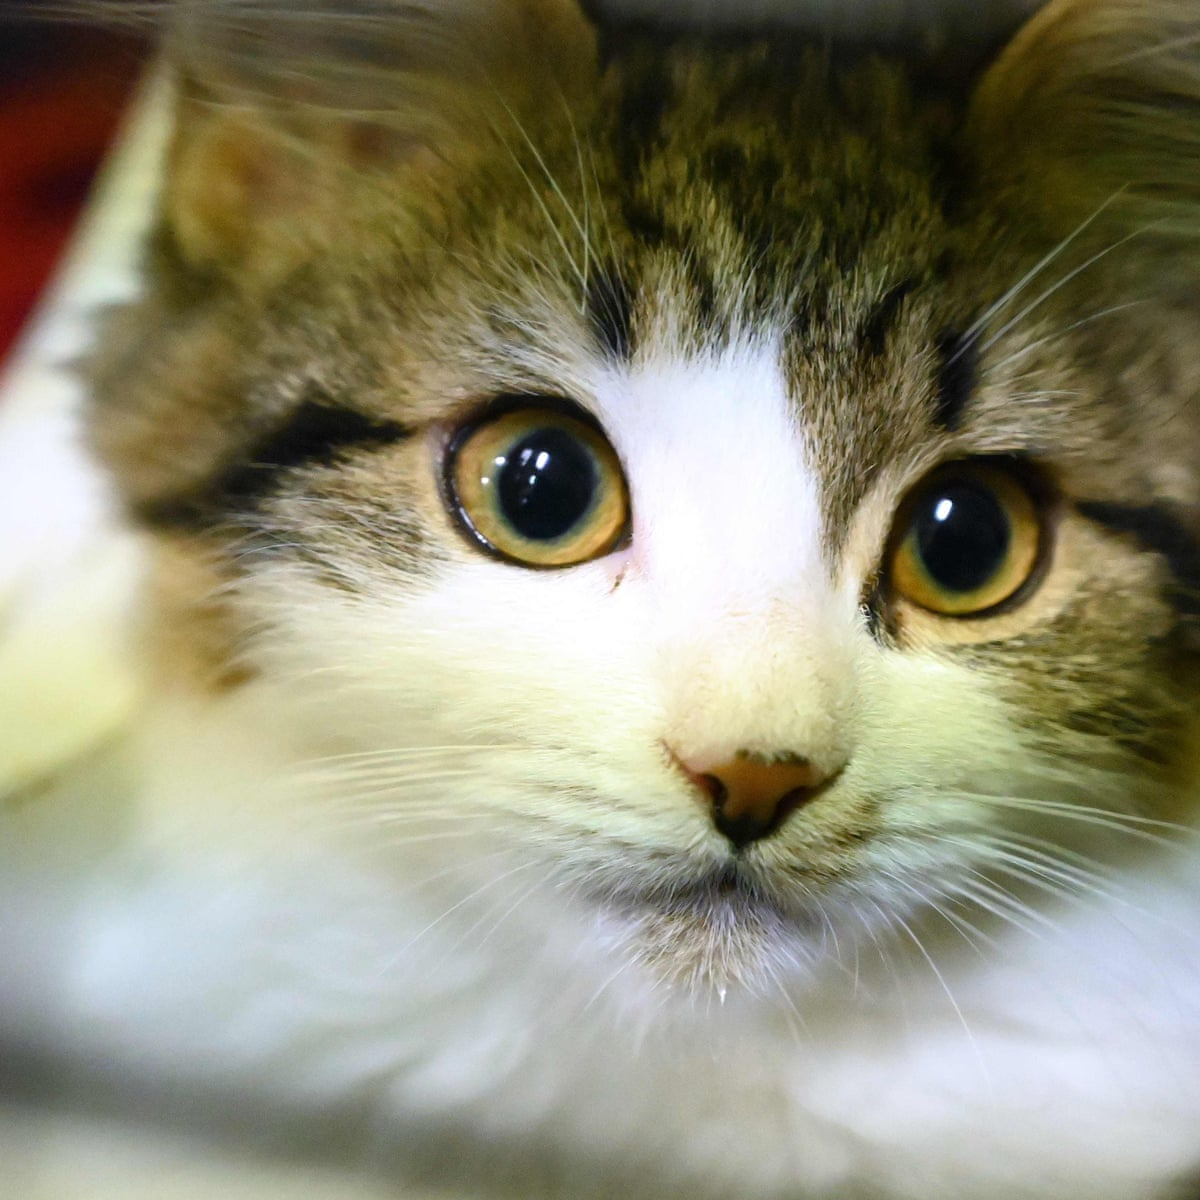 Cats can infect each other with coronavirus, Chinese study finds |  Coronavirus | The Guardian